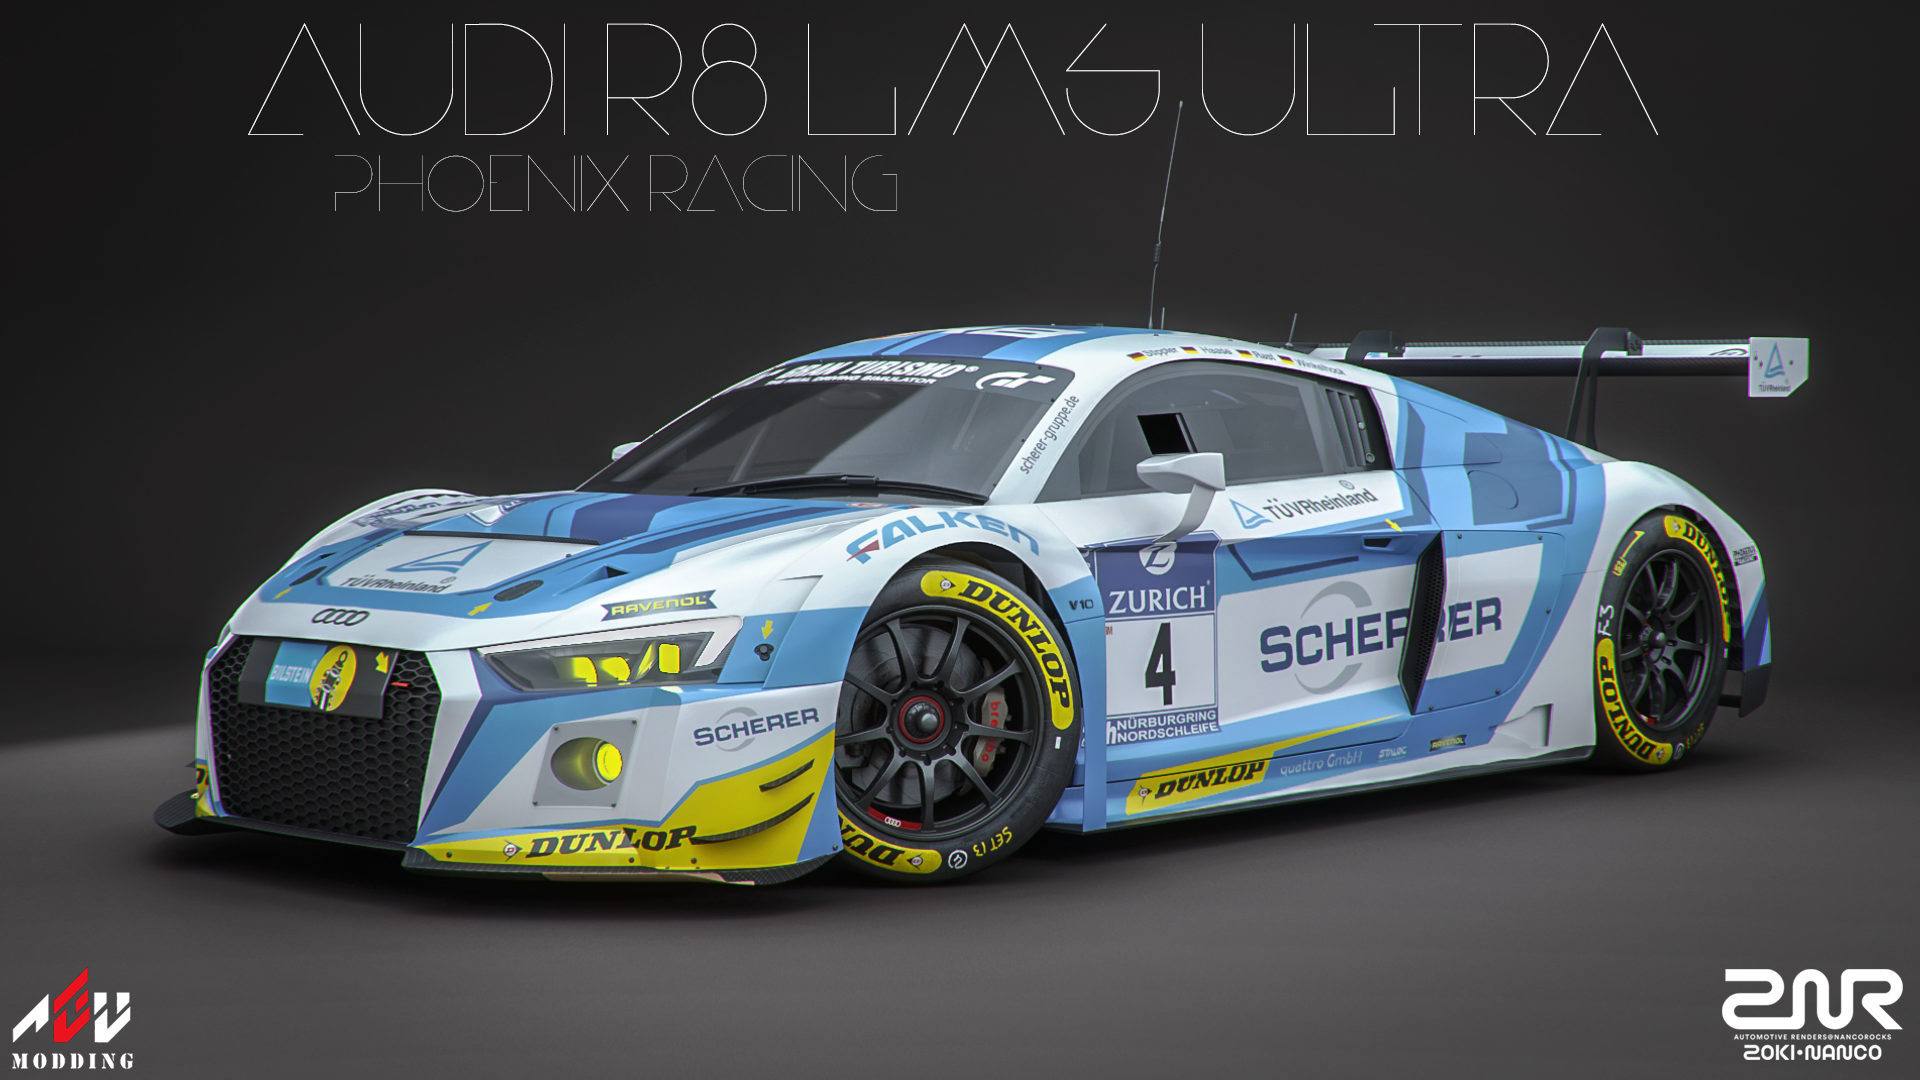 Audi R8 Lms Ultra Phoenix Racing By Nancorocks On